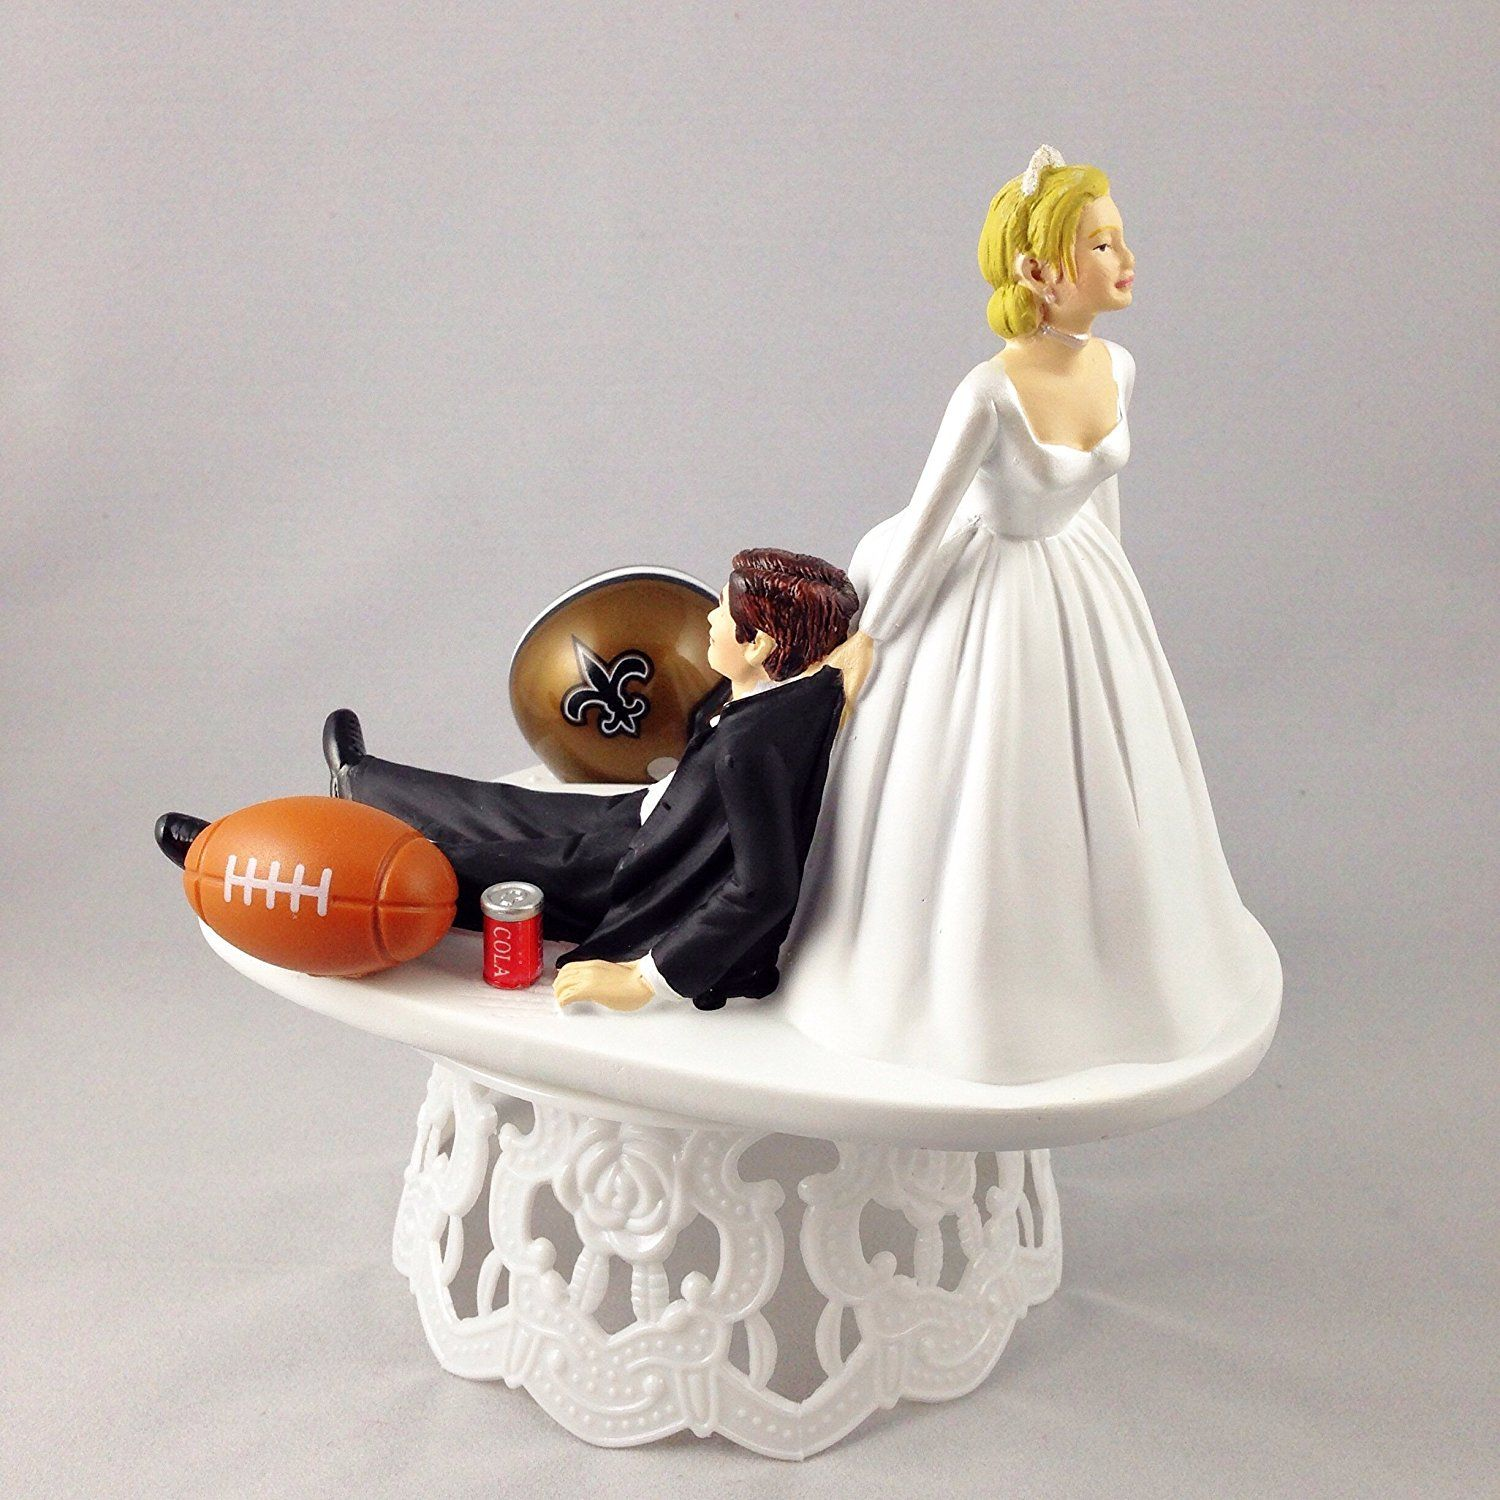 Funny Wedding Cake Topper New Orleans Saints Football Themed Can Be  Personalized with Your Favorite NFL Team    More infor at the link of image      baking ... c301b462d